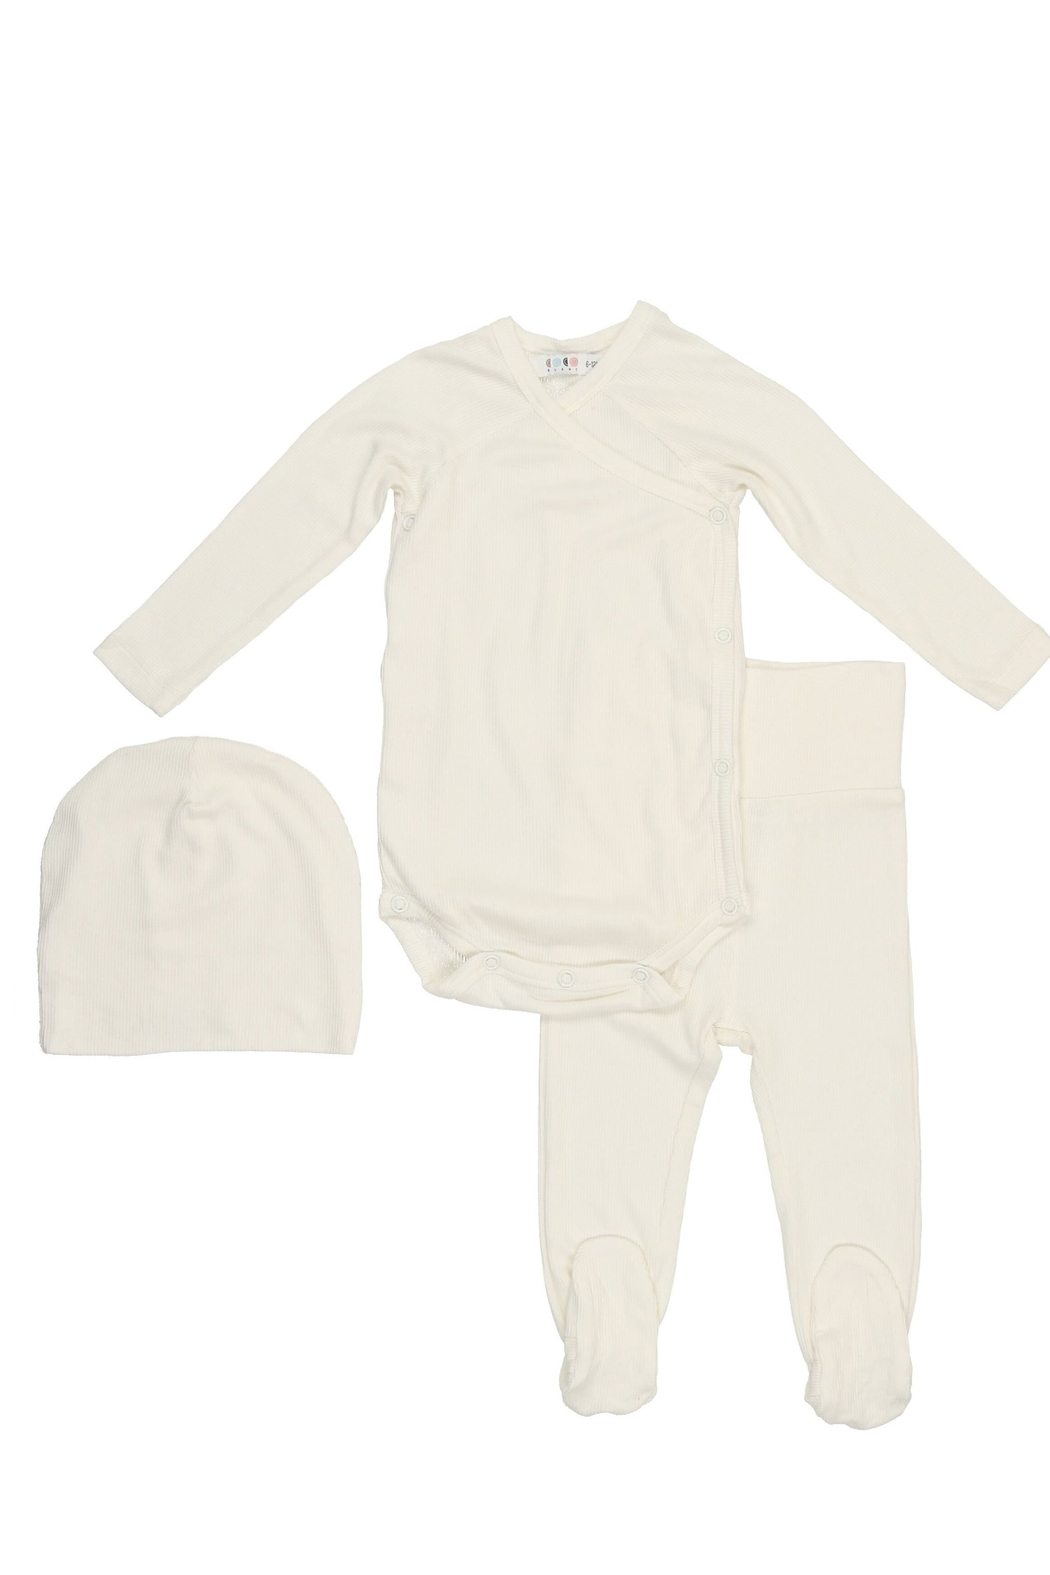 Coco Blanc Baby Gift Set - Front Cropped Image